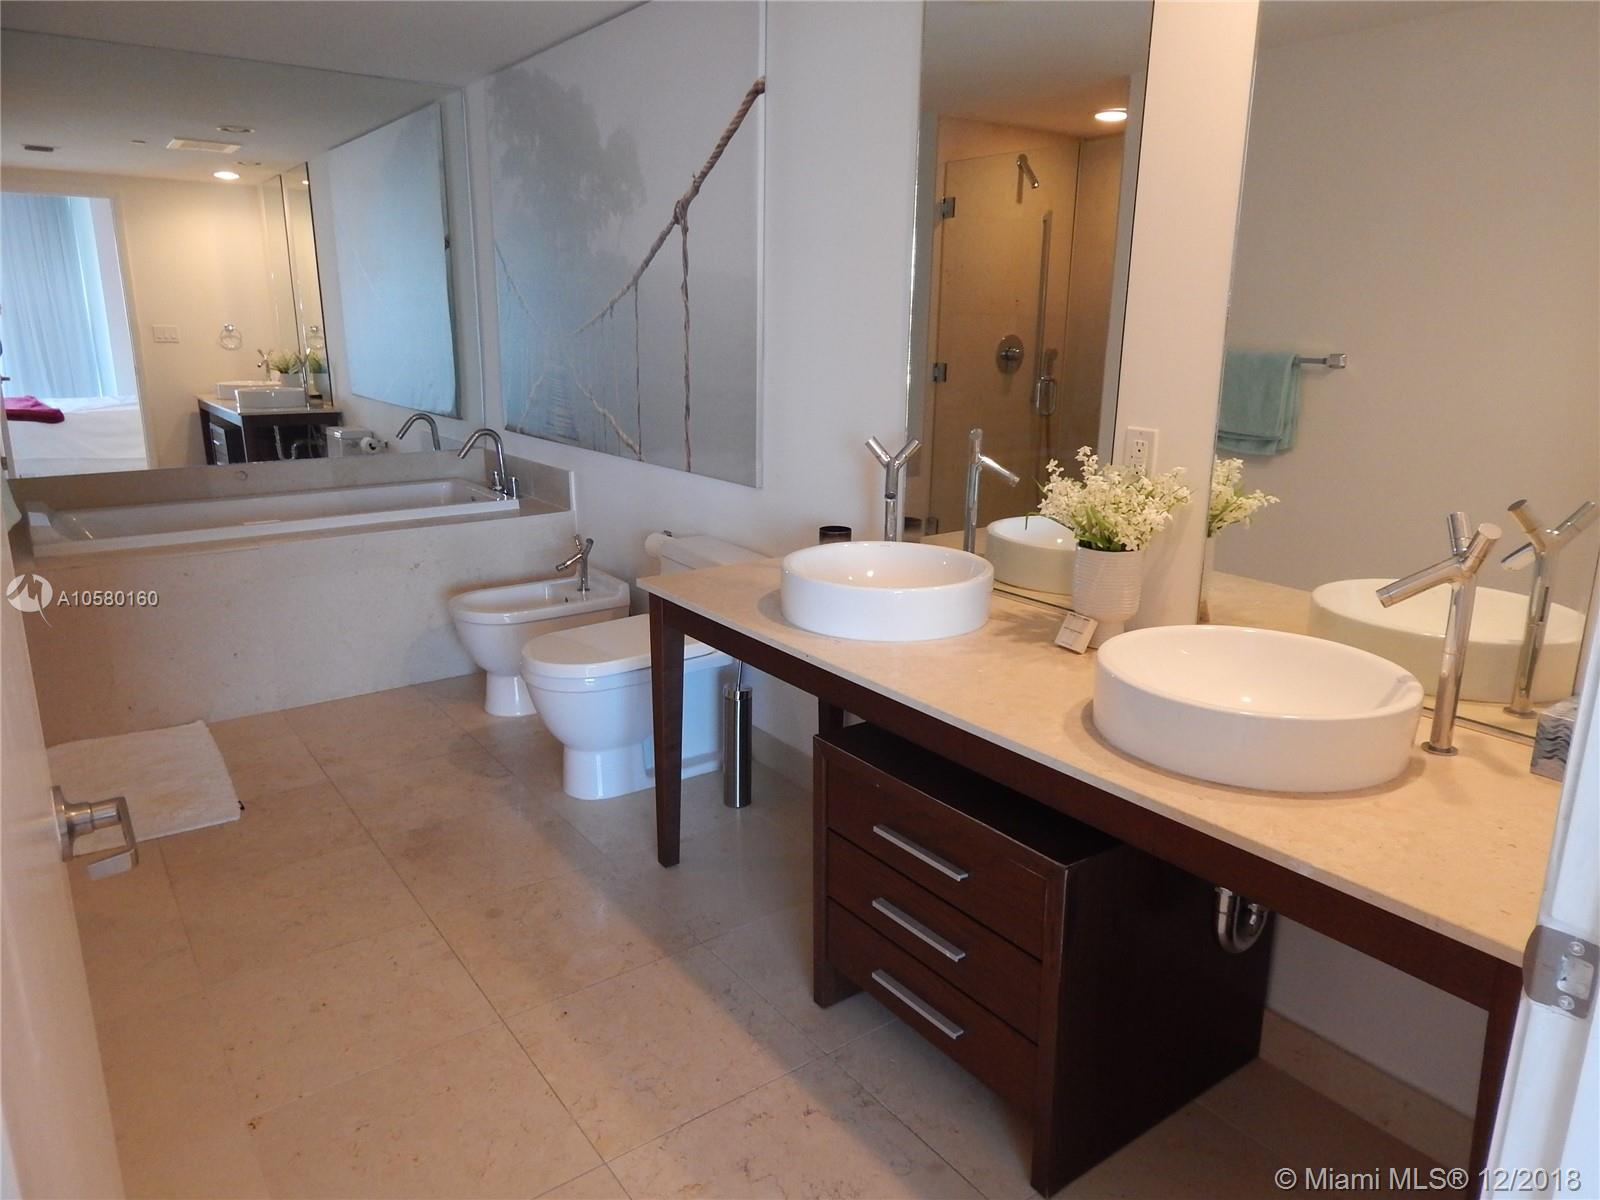 495 Brickell Ave, Miami, FL 33131, Icon Brickell II #3702, Brickell, Miami A10580160 image #8